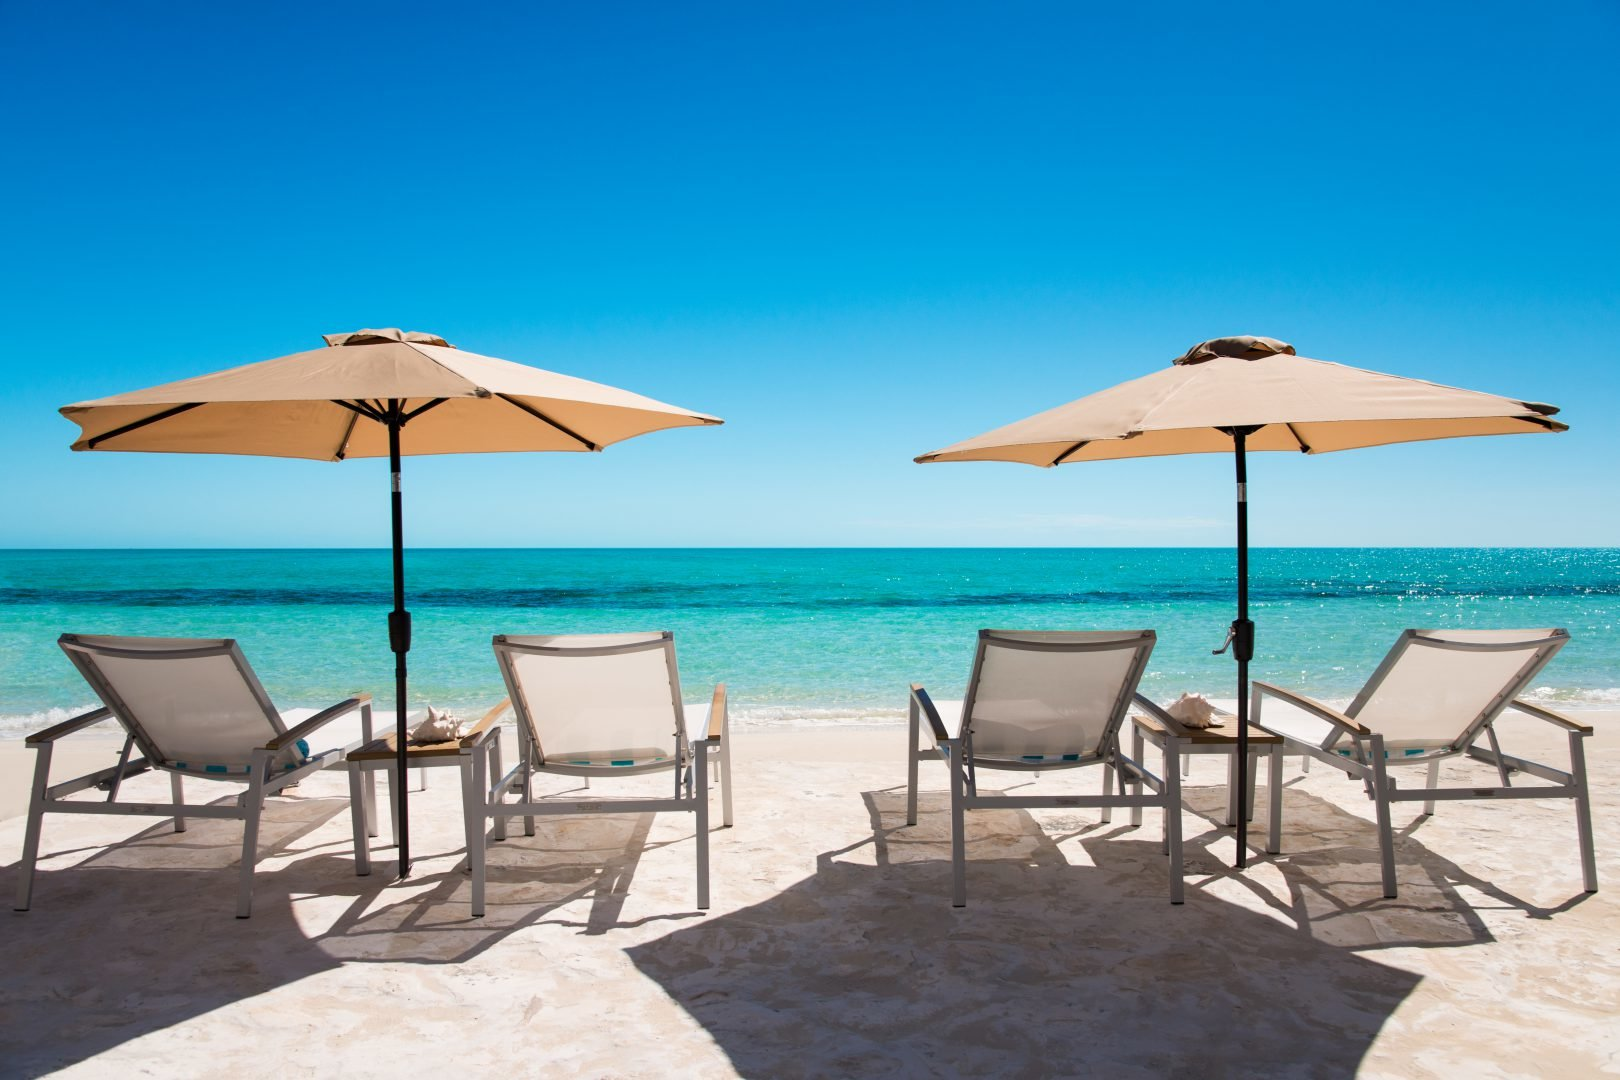 A Quick Vacation Guide to the Turks and Caicos Islands